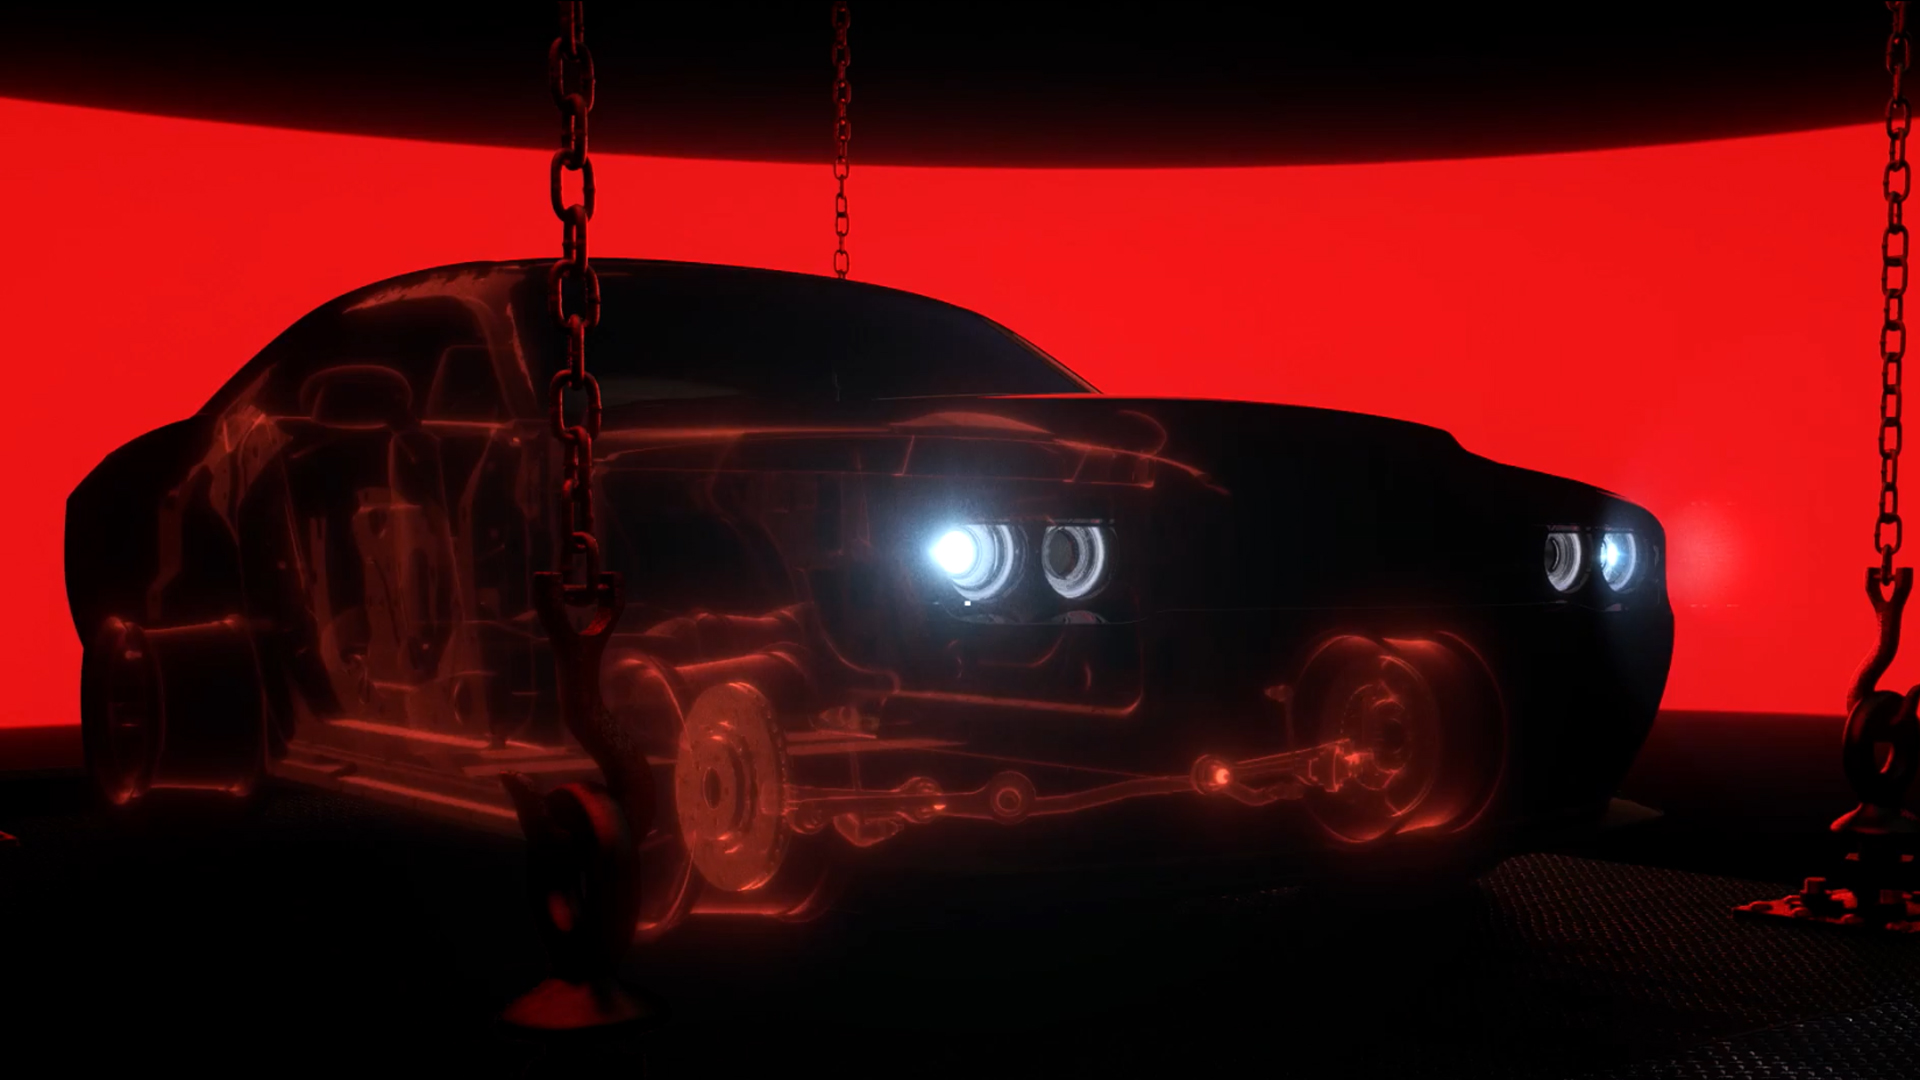 Dodge Challenger SRT Demon - 2017 - dark front light - teaser